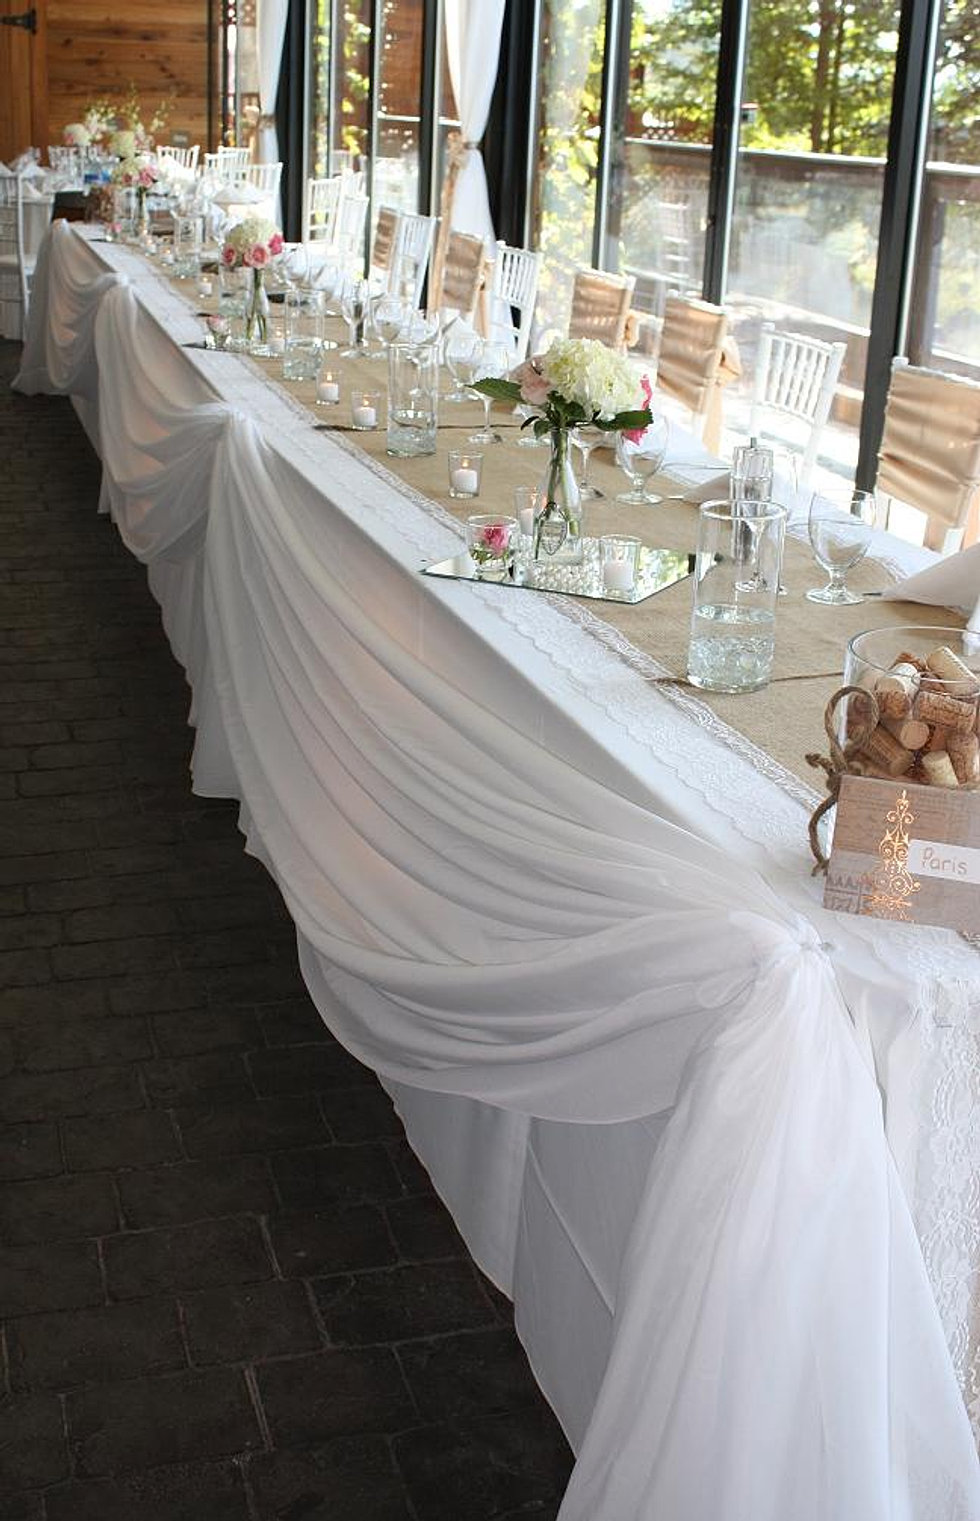 Impressions weddings events decor packages all packages are completely customizable junglespirit Gallery